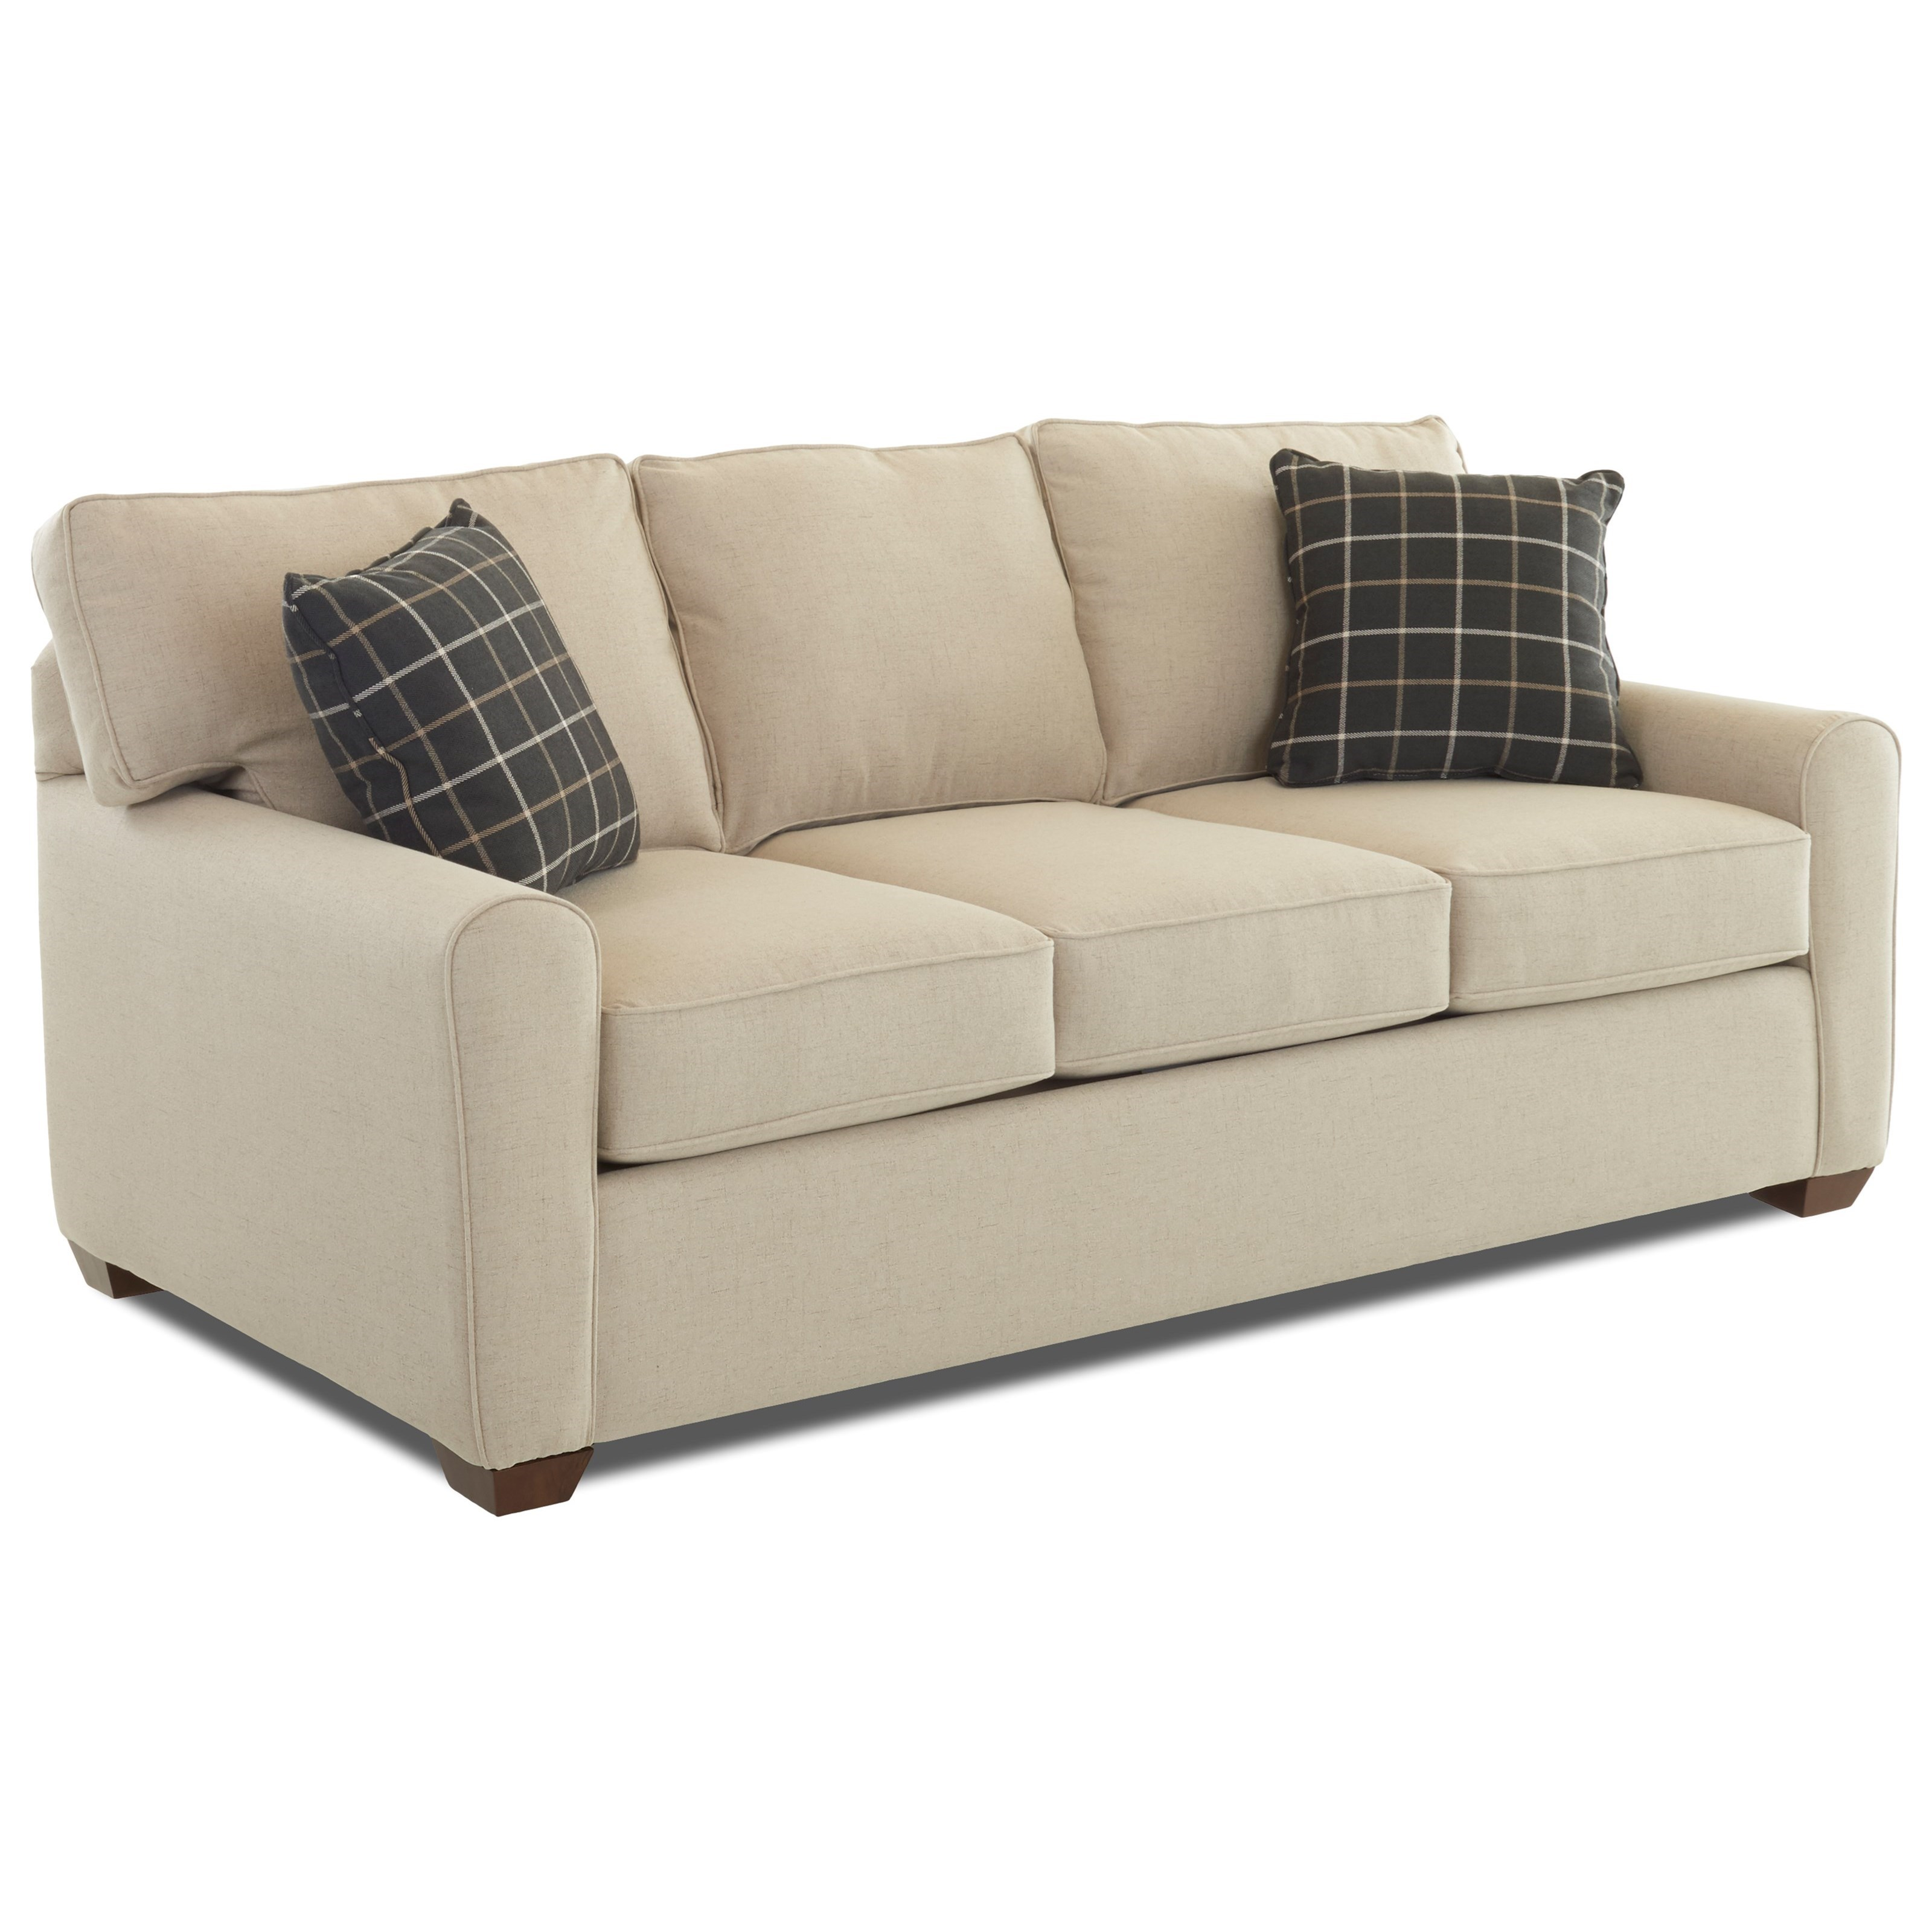 Sofa Welt Casual Stationary Sofa With Box Seat Cushions And Welt